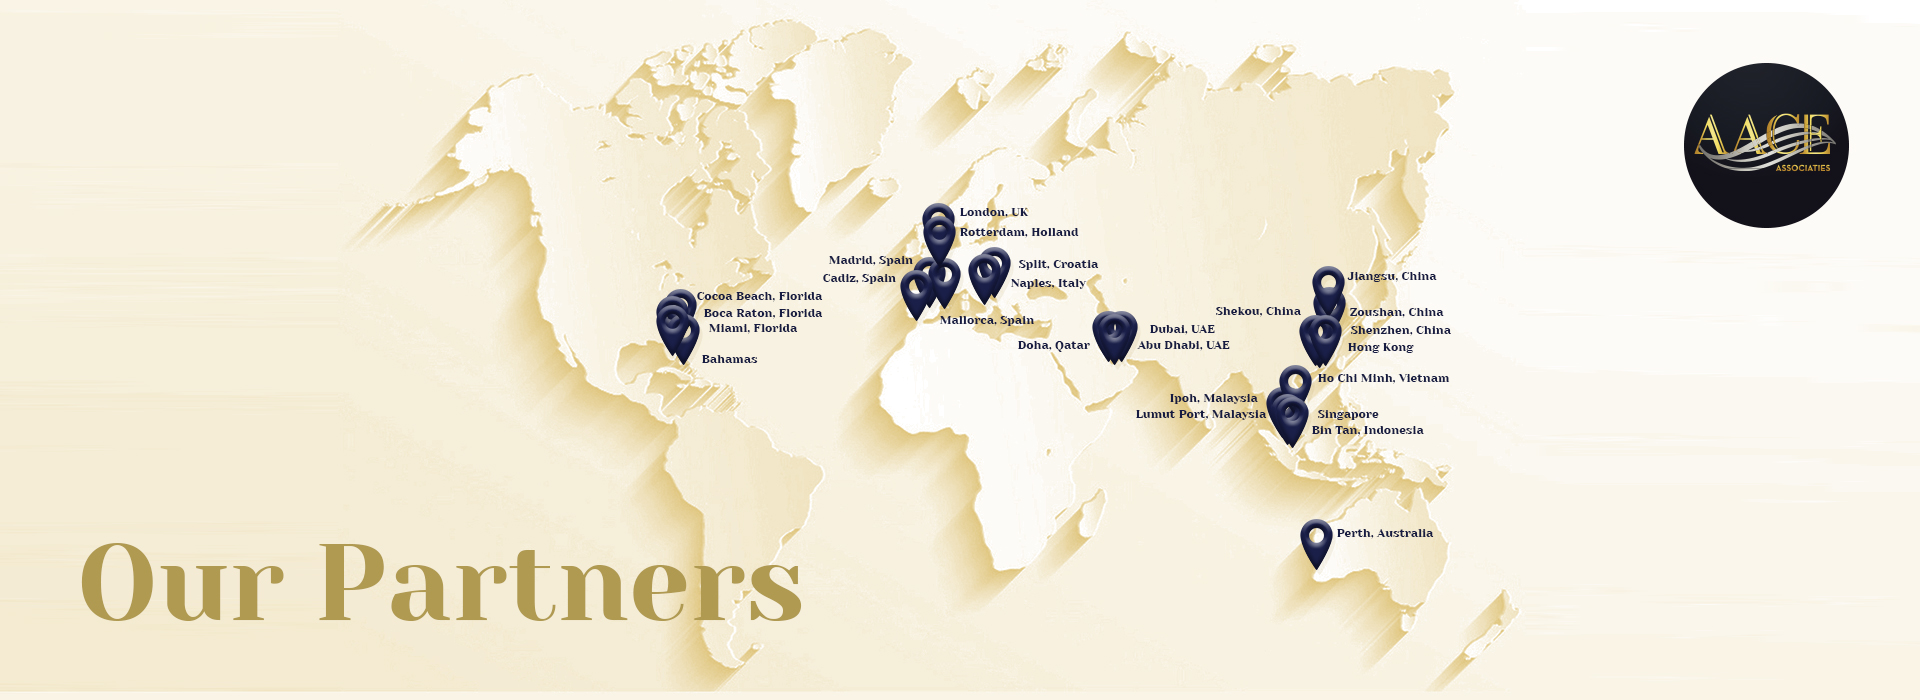 our-partners-map-slider